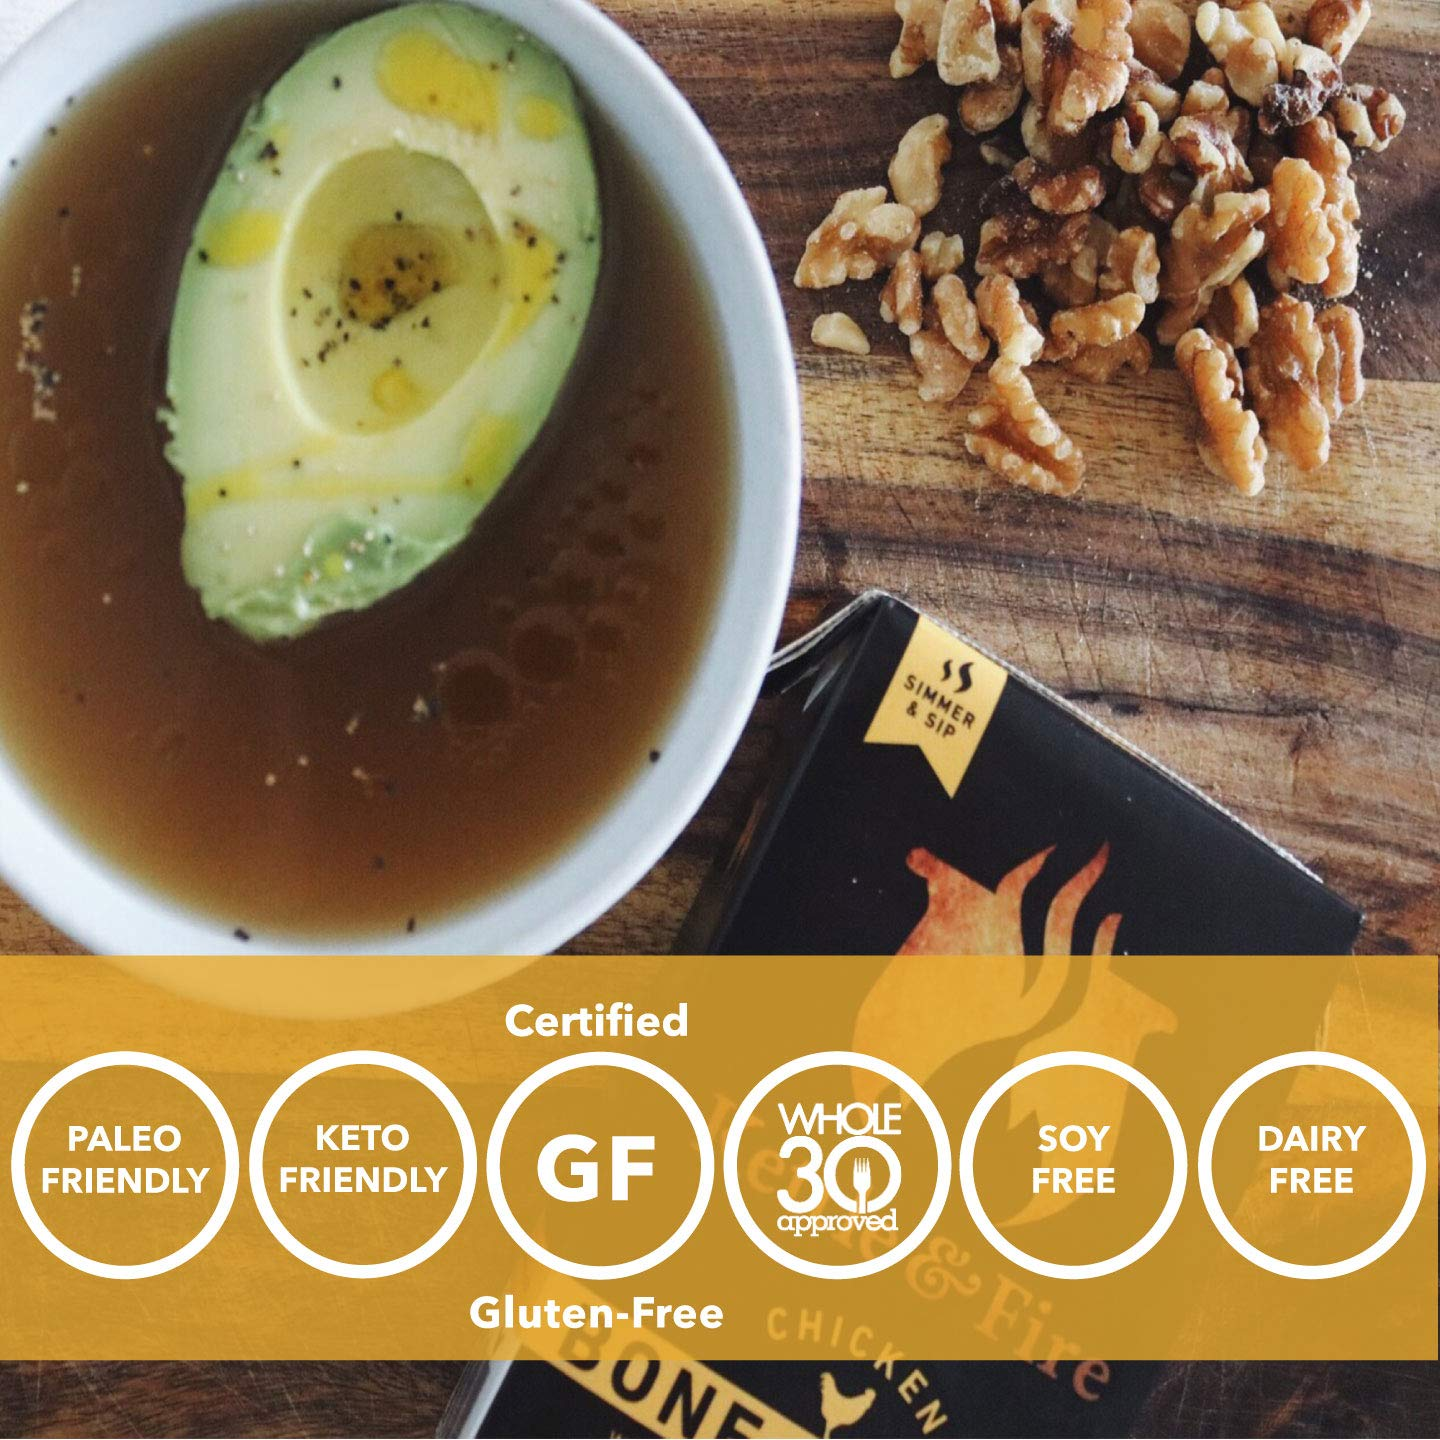 Chicken Bone Broth Soup by Kettle and Fire, Pack of 12, Keto Diet, Paleo Friendly, Whole 30 Approved, Gluten Free, with Collagen, 7g of protein, 16.9 fl oz by Kettle & Fire (Image #3)